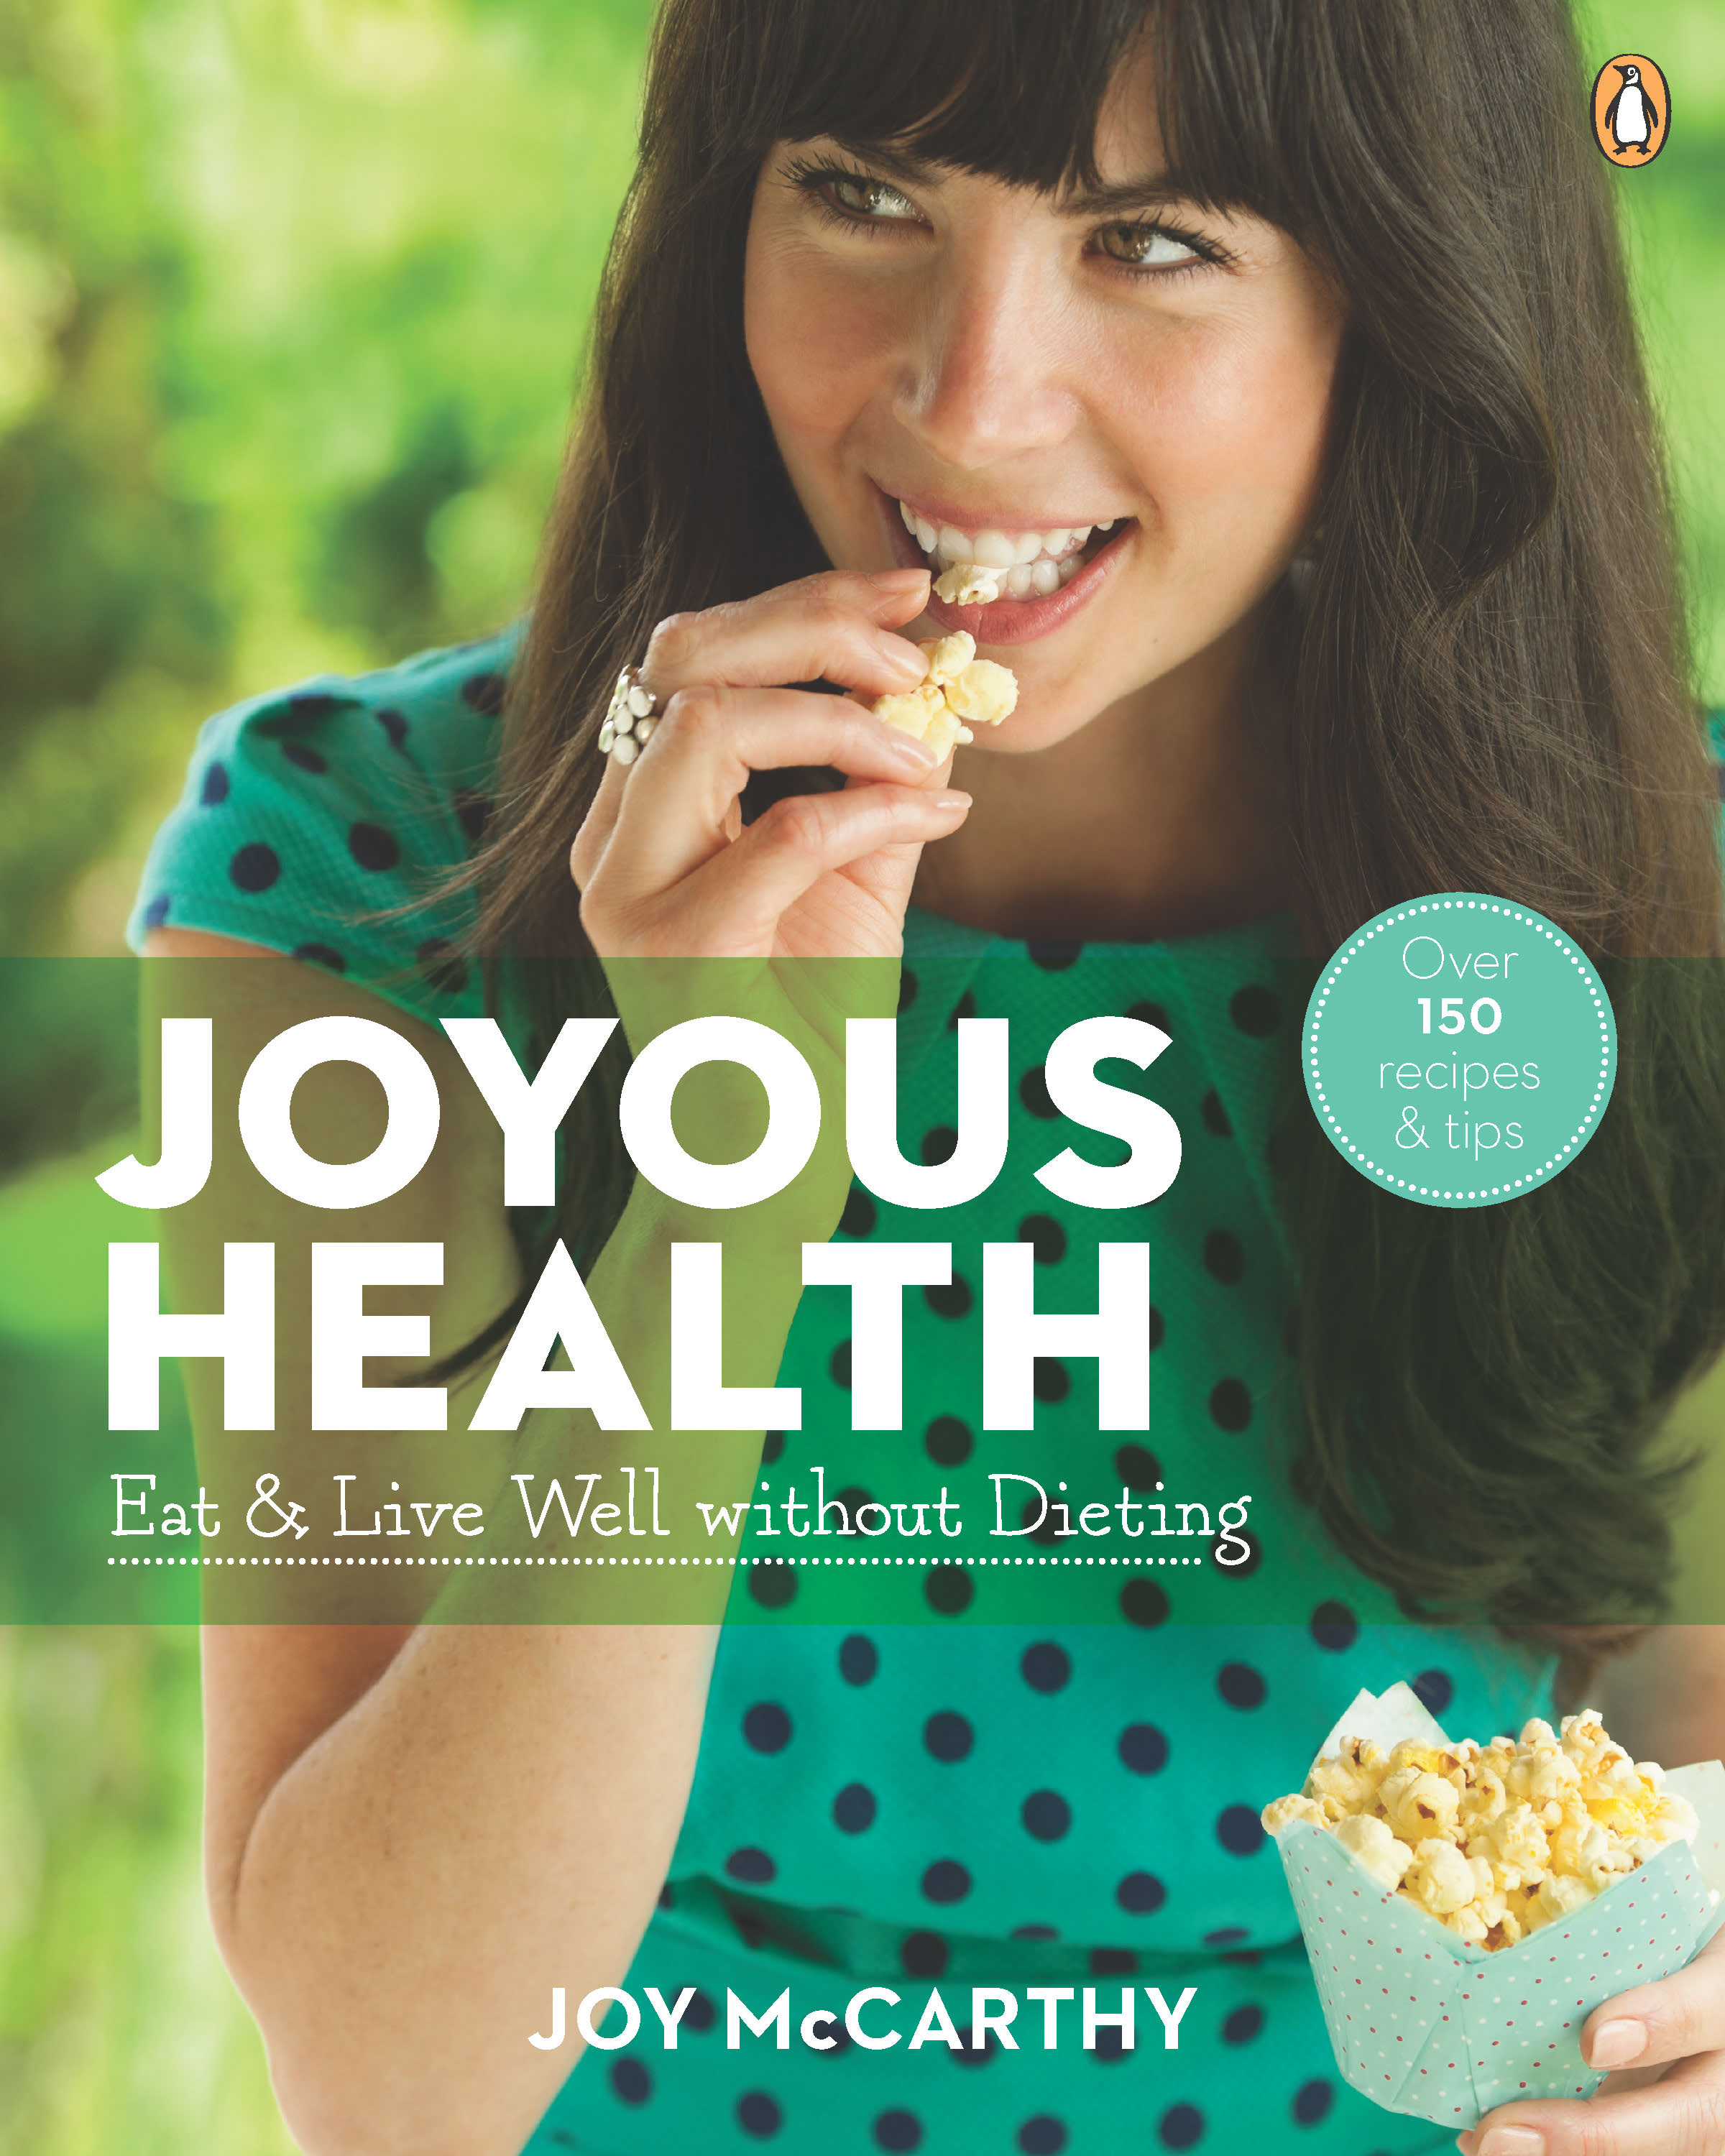 Book cover & images from Joyous Health